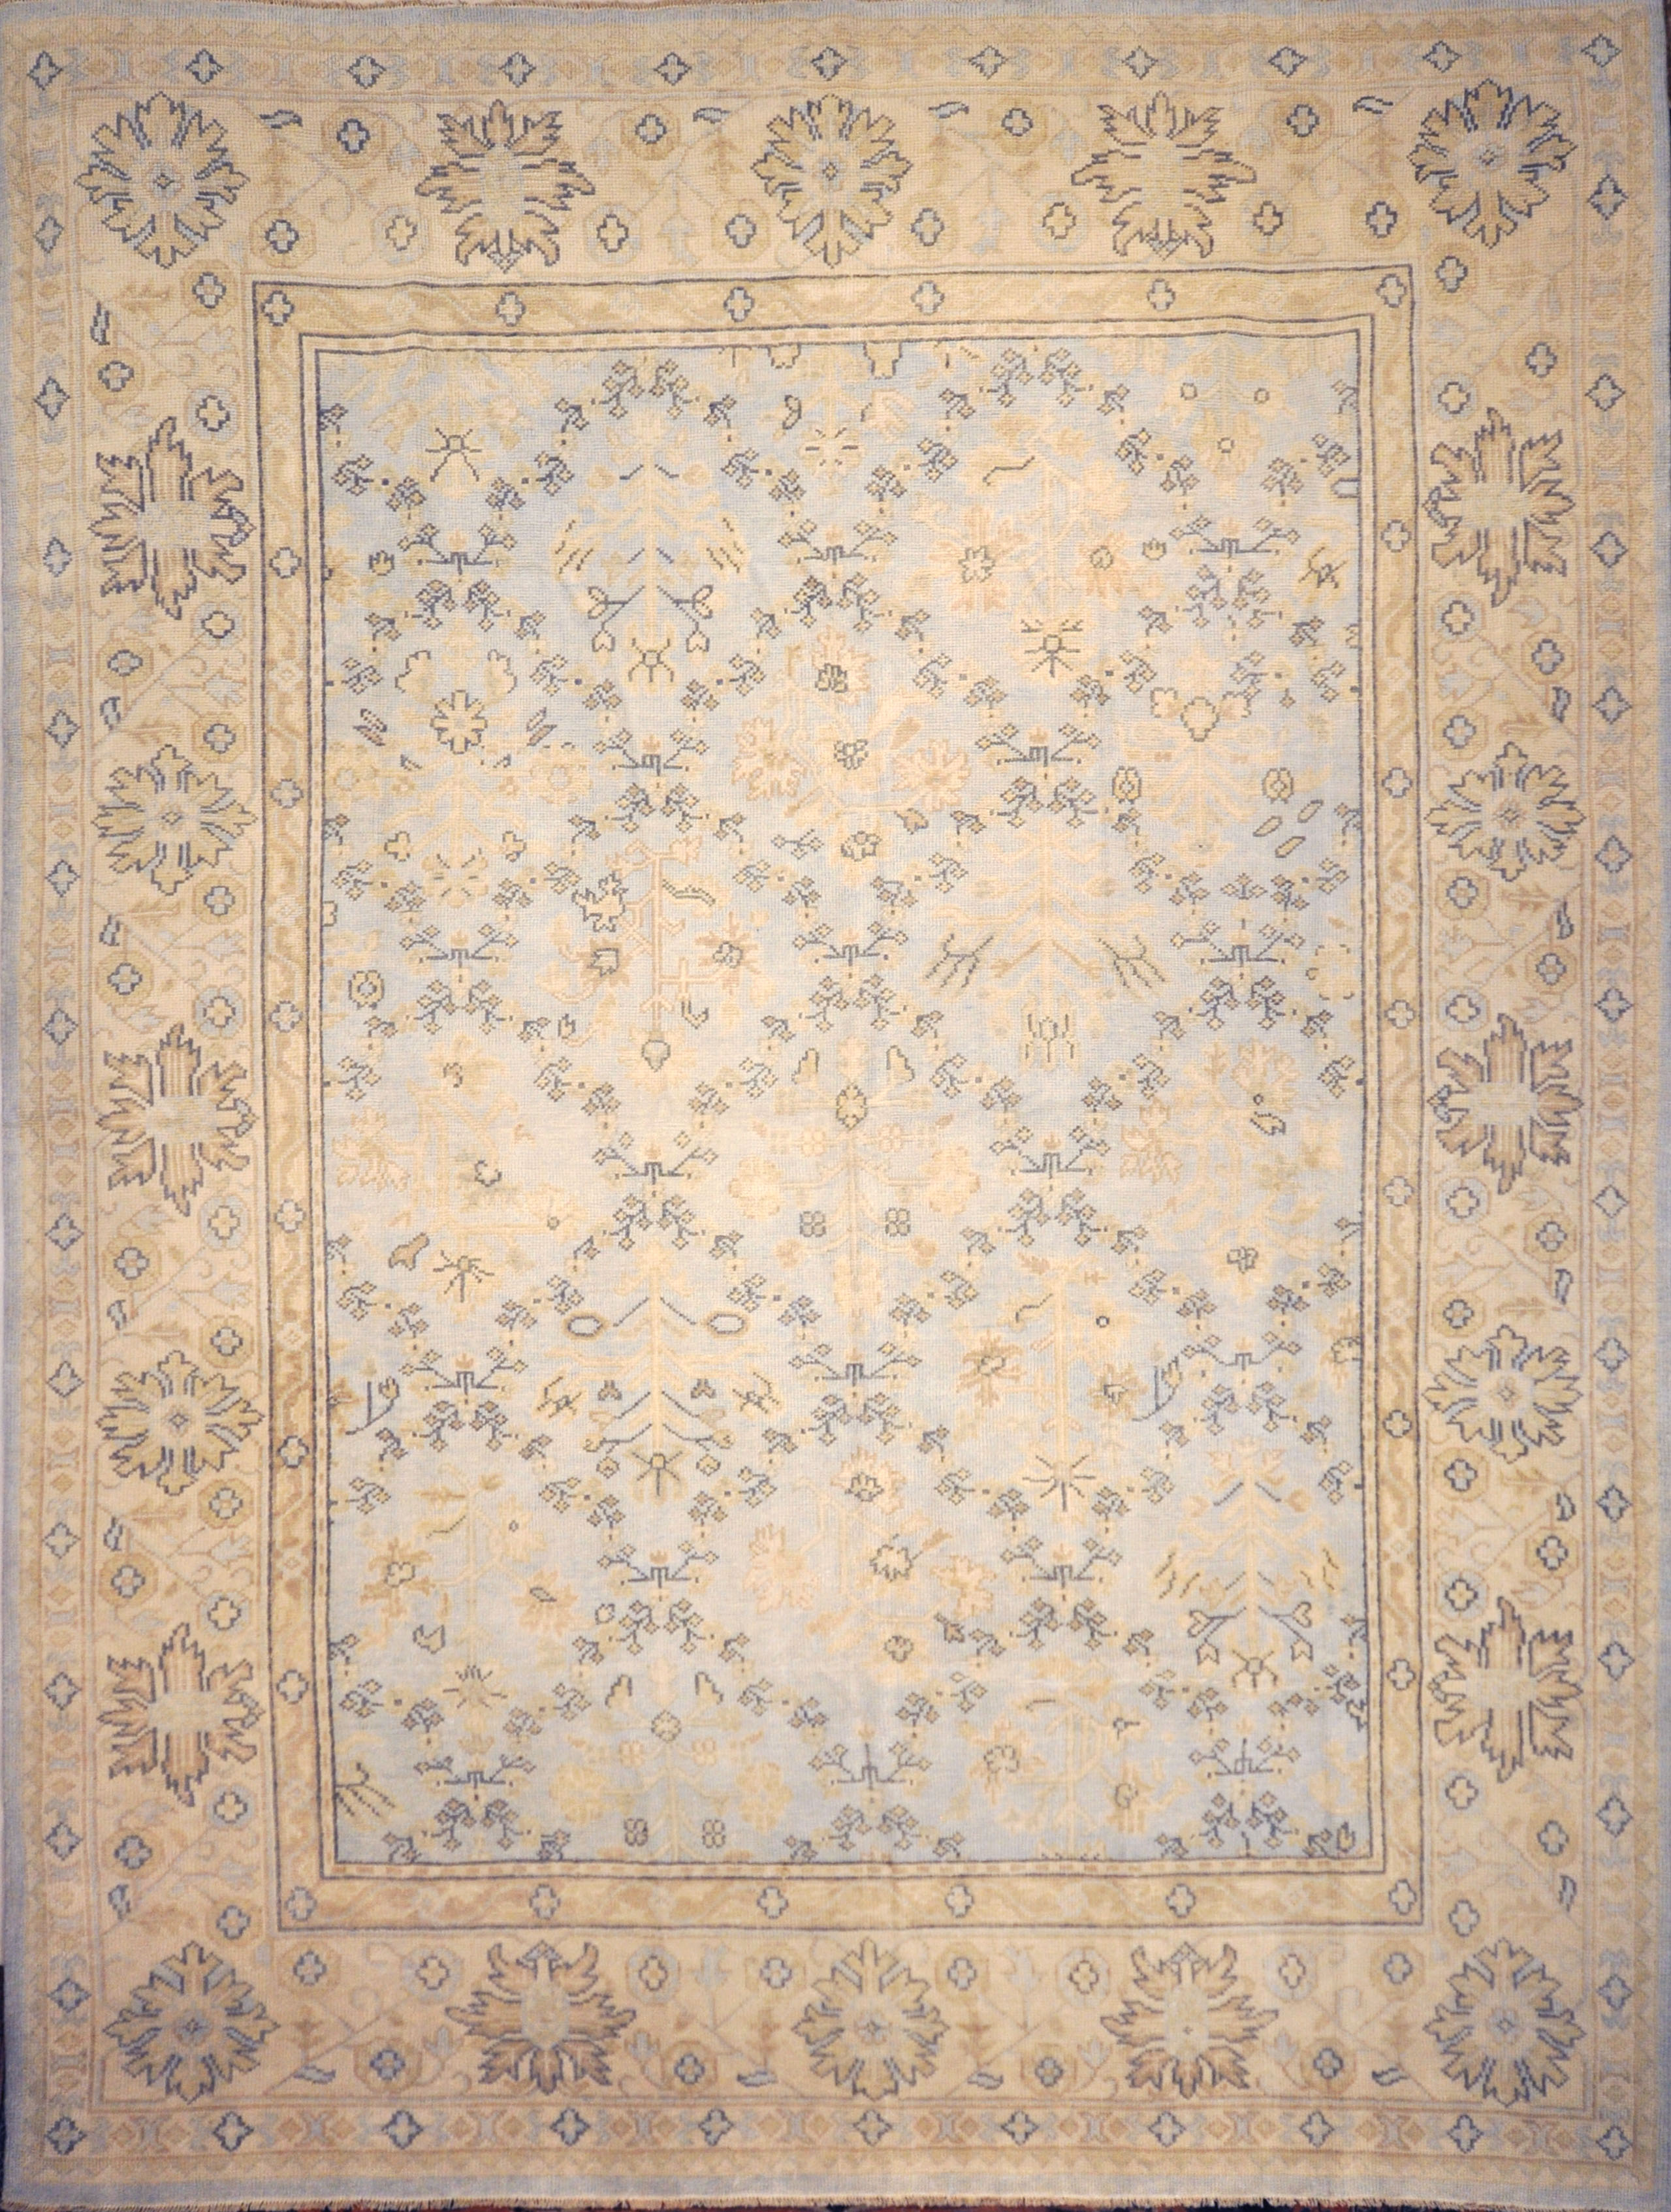 Montecito Oushak Rug 30306. A piece of genuine authentic woven art woven by Ziegler and Company and sold by Santa Barbara Design Center, Rugs and More.